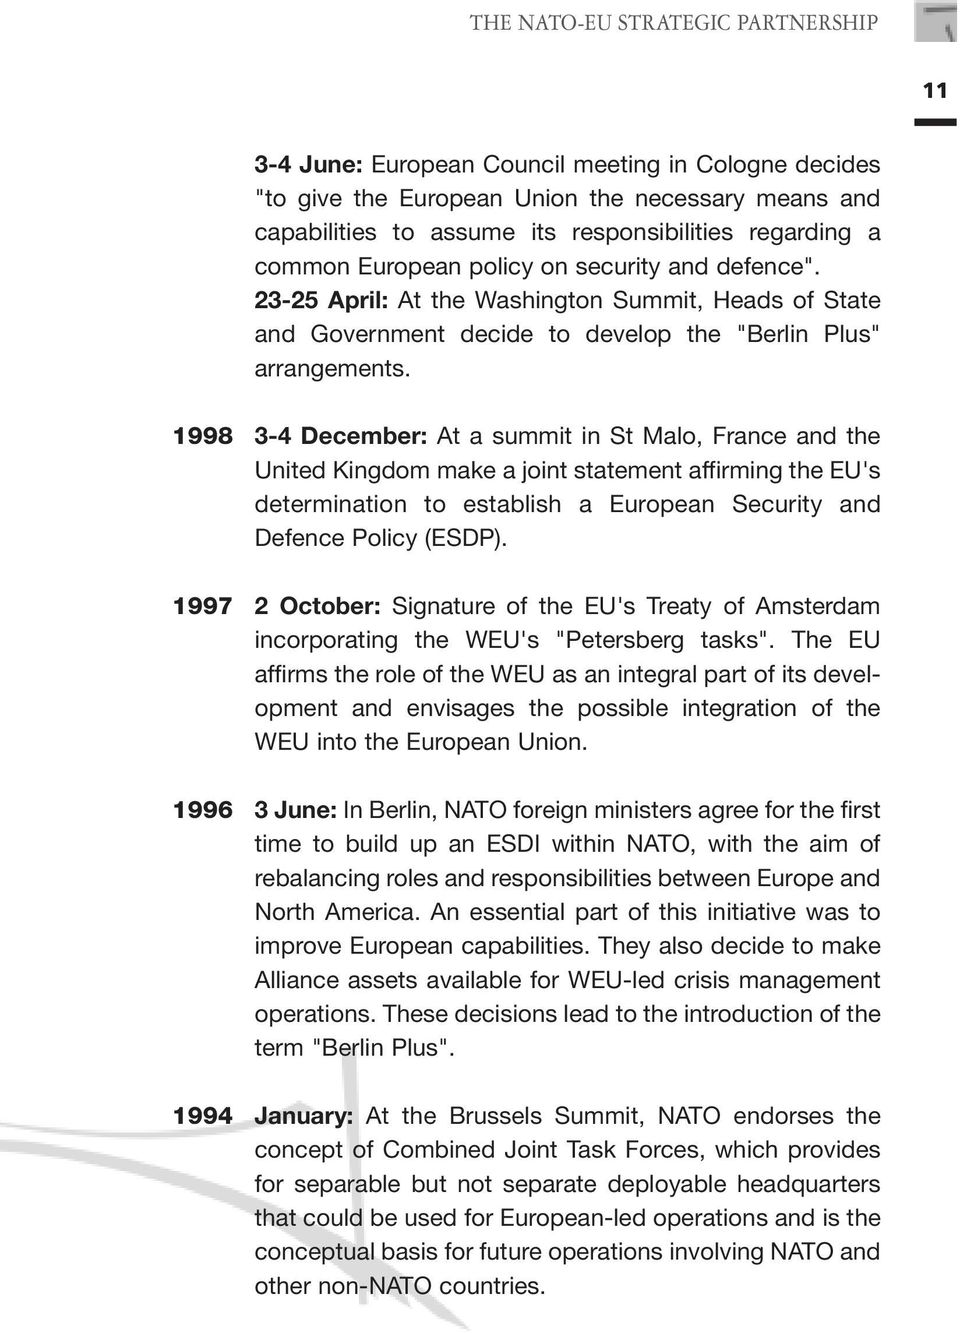 1998 3-4 December: At a summit in St Malo, France and the United Kingdom make a joint statement affirming the EU's determination to establish a European Security and Defence Policy (ESDP).